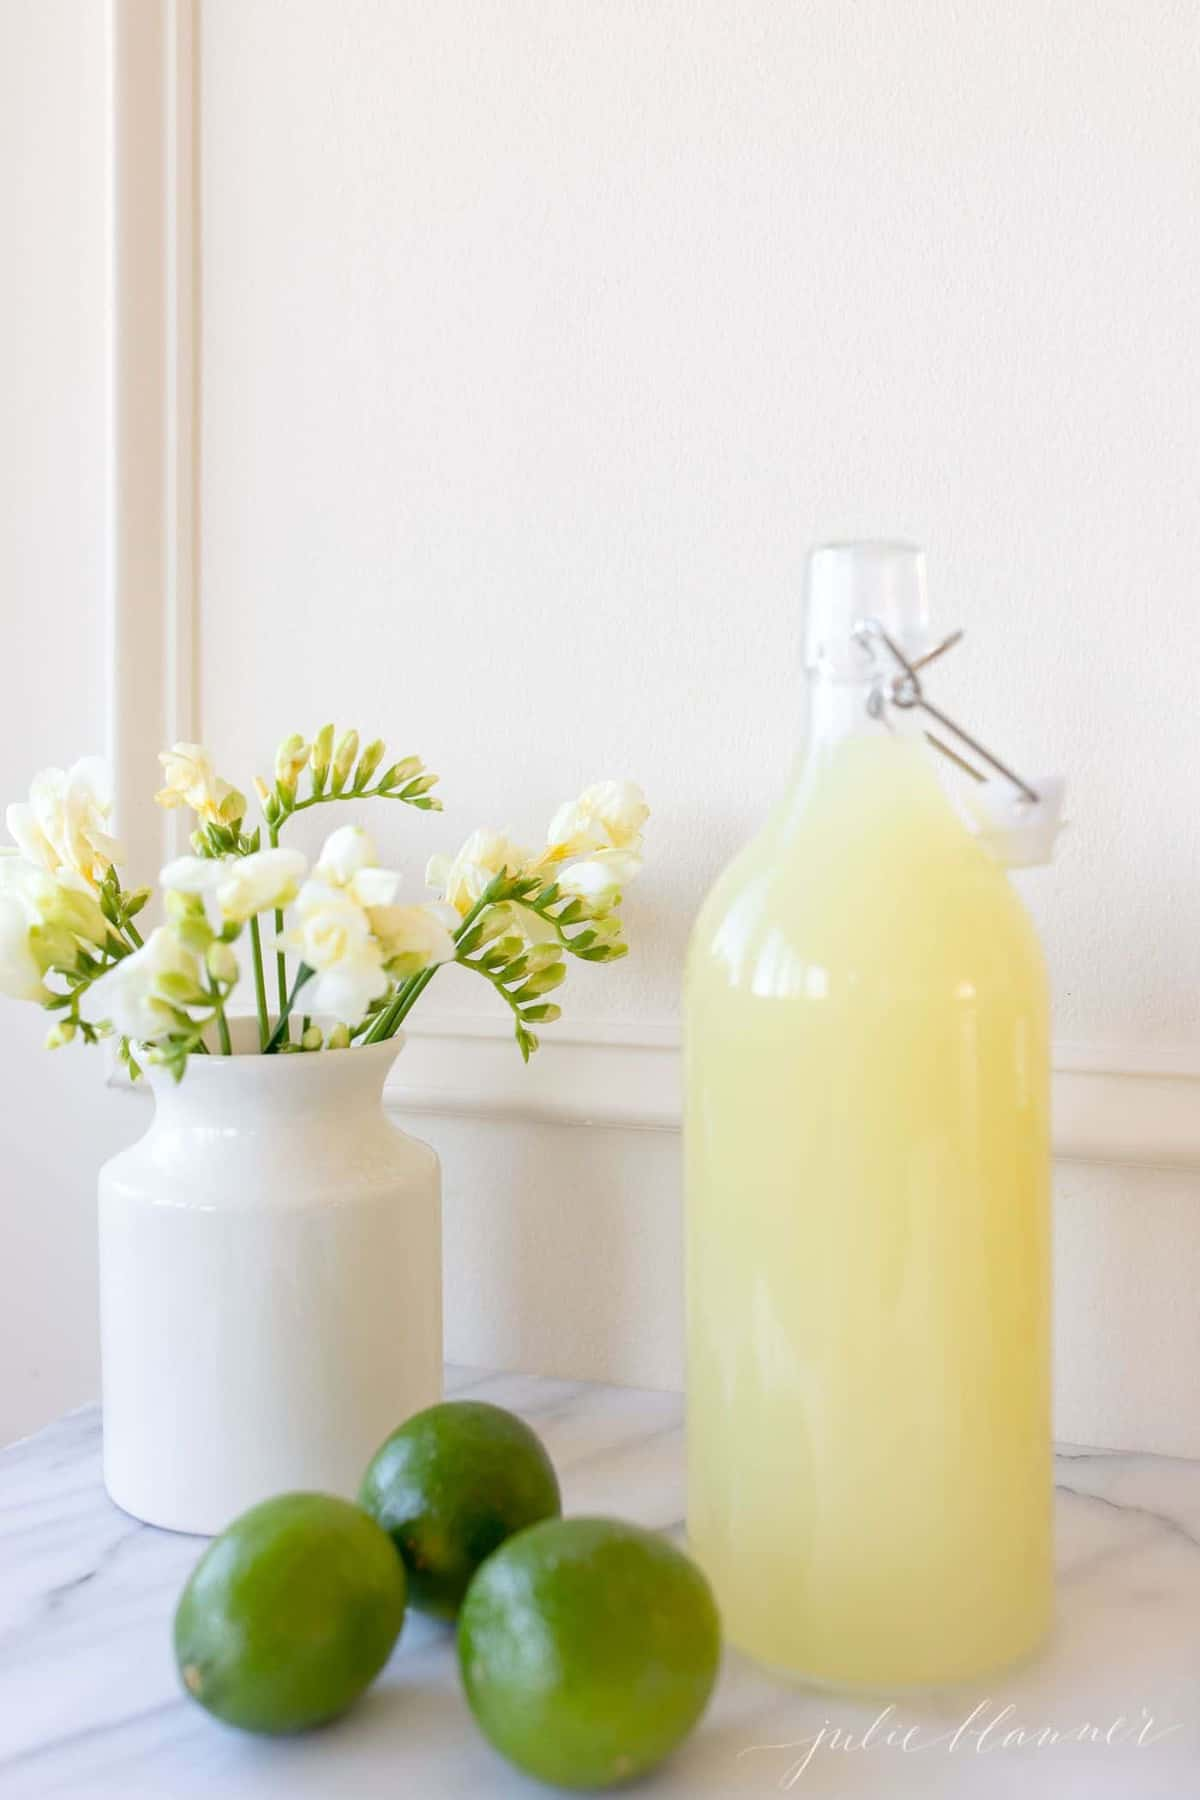 A yellow juice liquid stored in a glass carafe; a vase full of yellow flowers sits to the side.